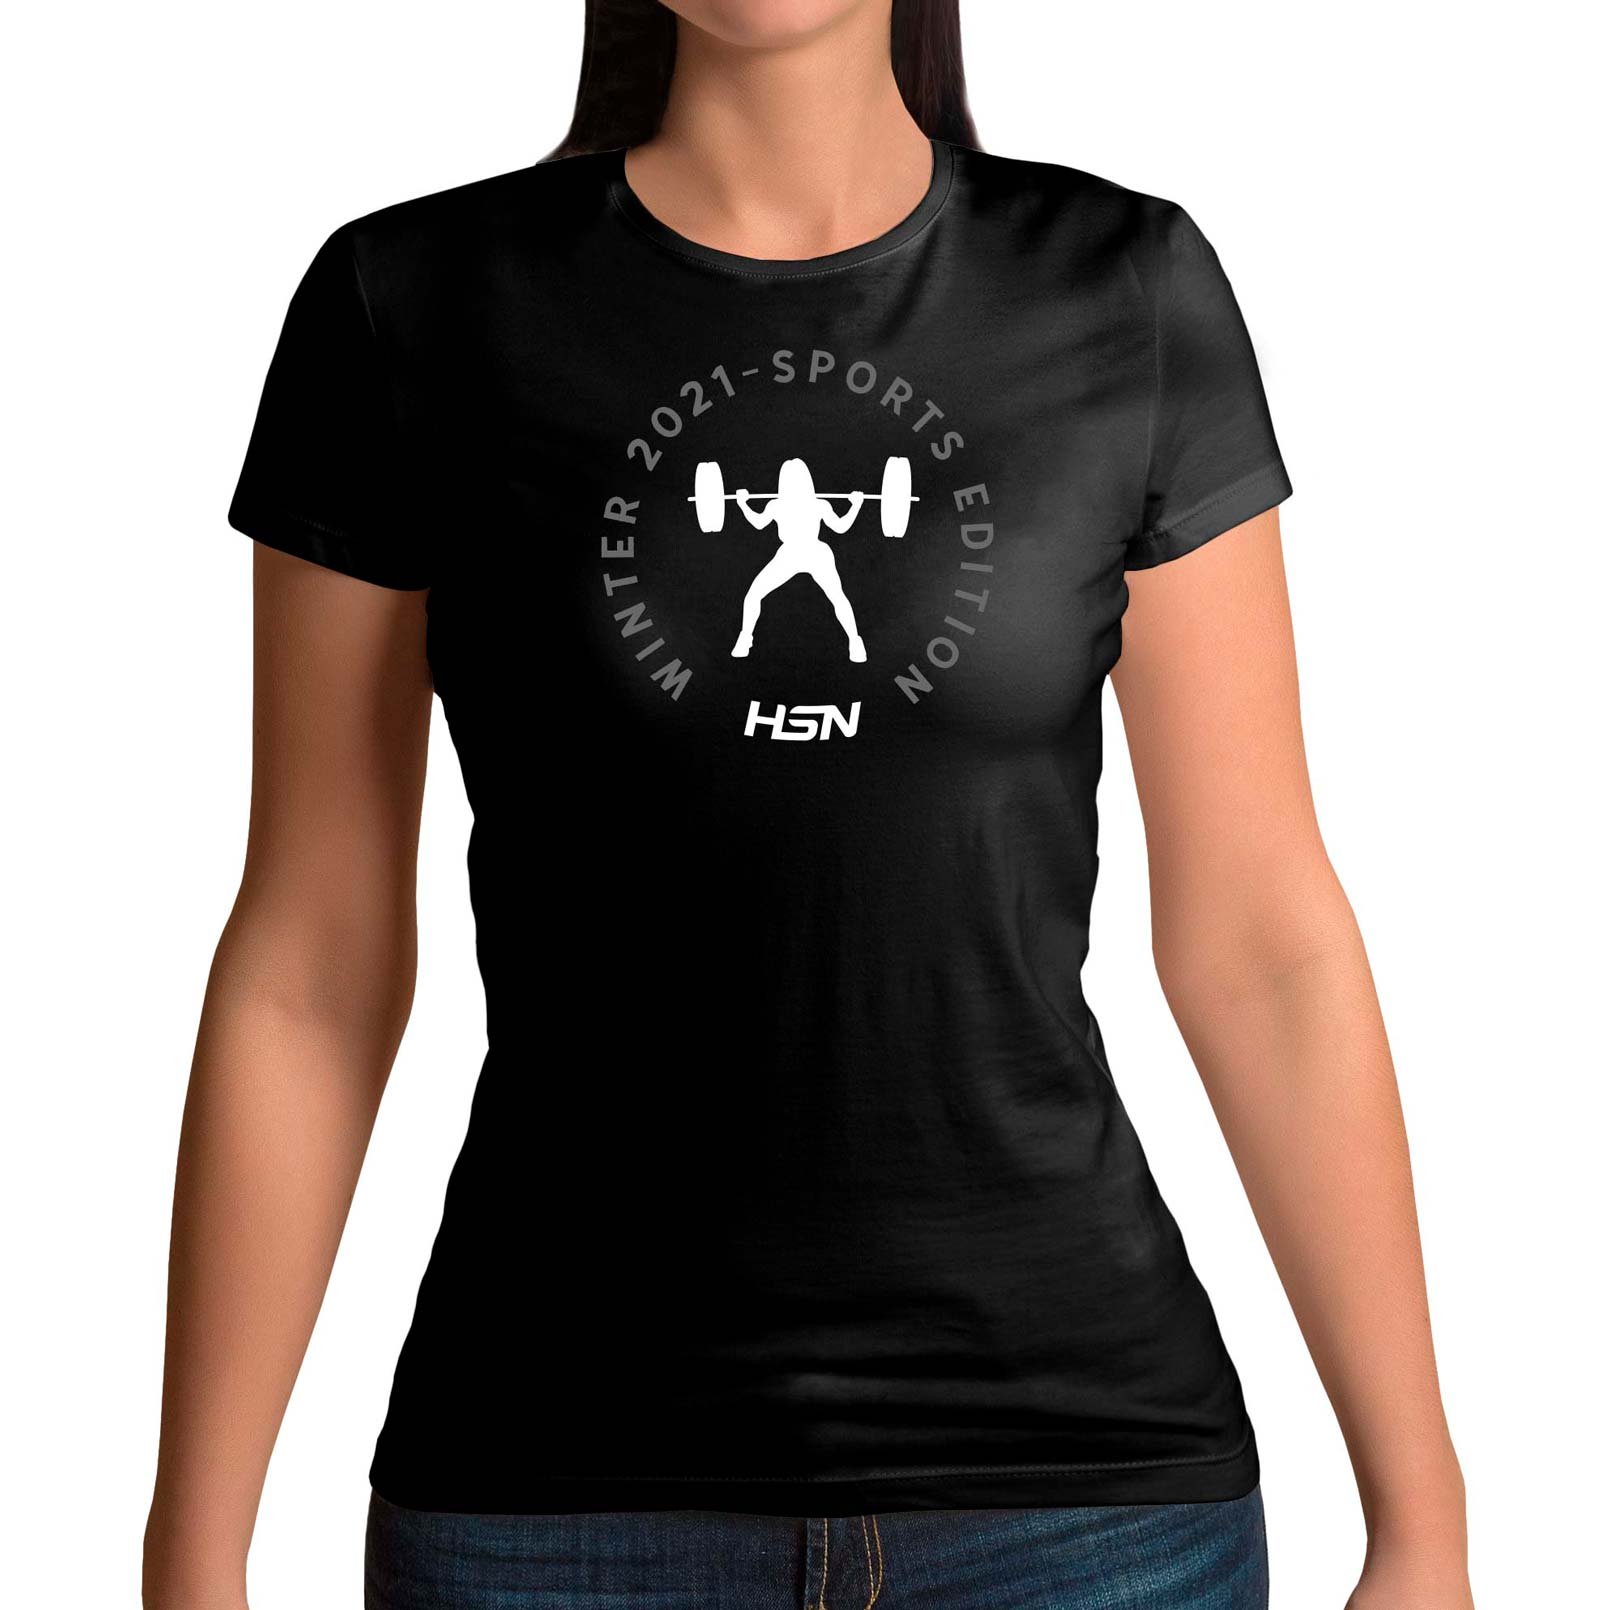 CAMISETA CHICA WINTER 2021 SPORTS EDITION CROSSFIT NEGRA - XL